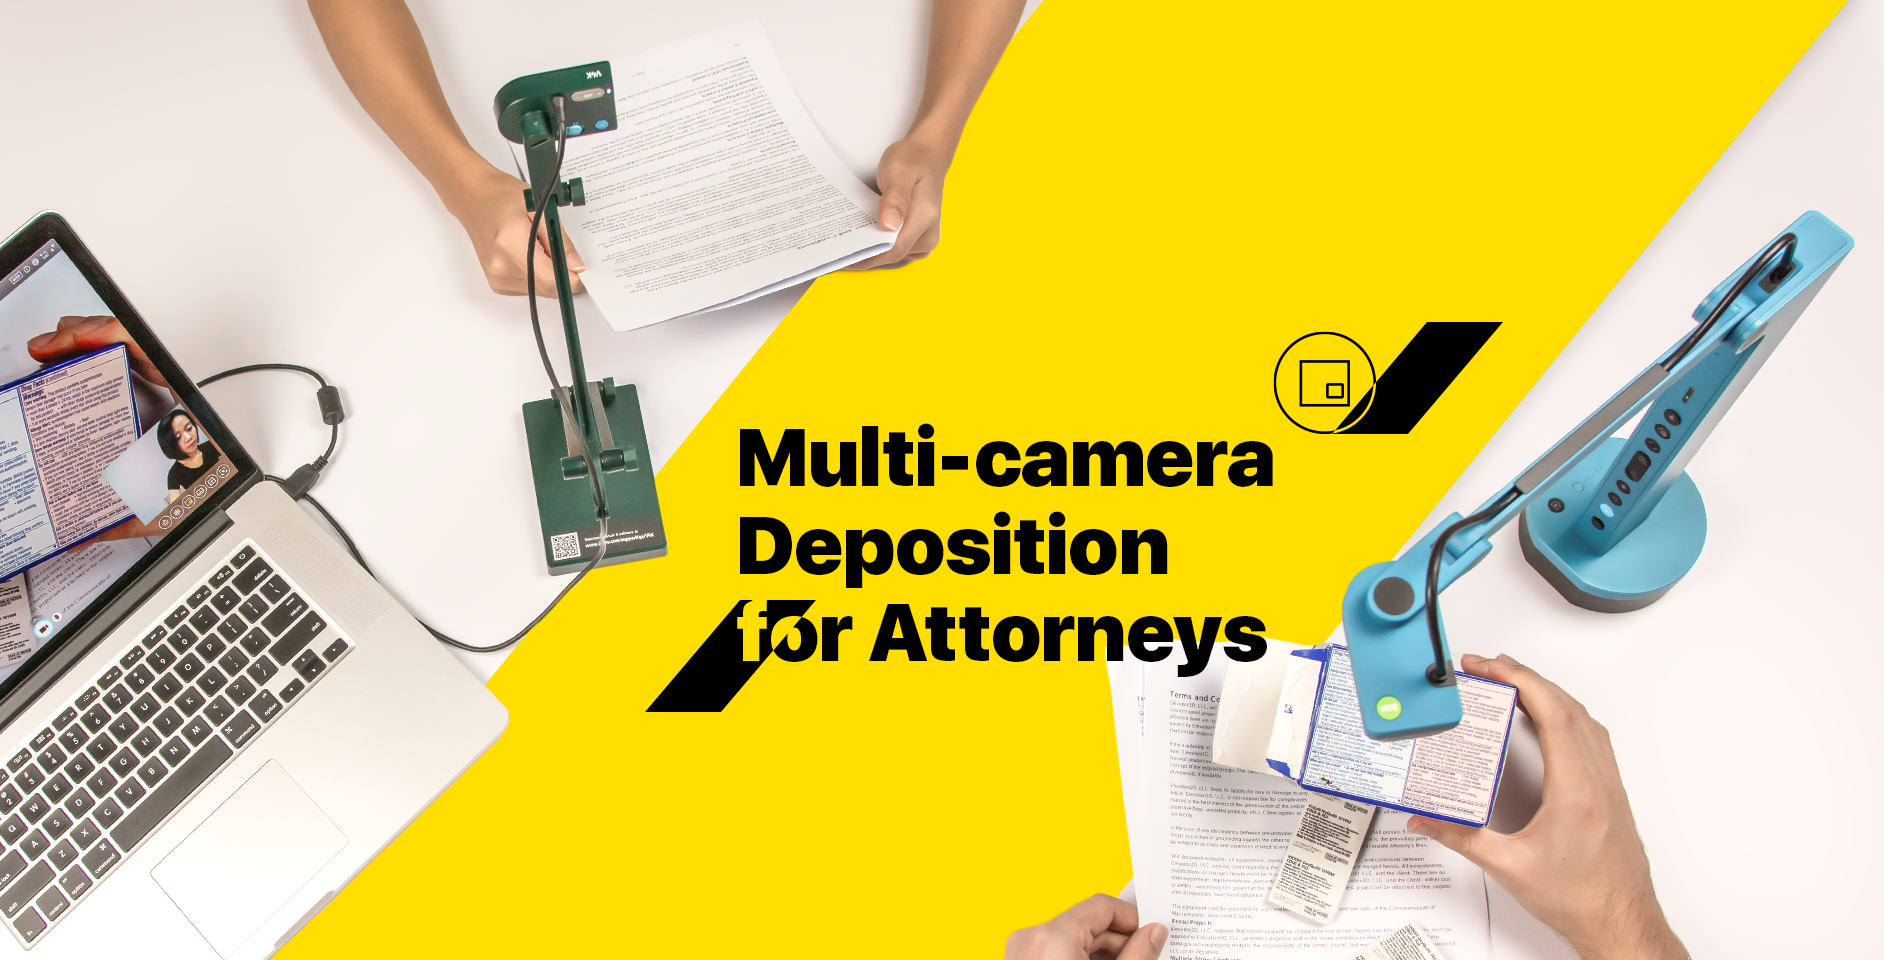 Multi-camera video deposition made easy for attorneys with IPEVO